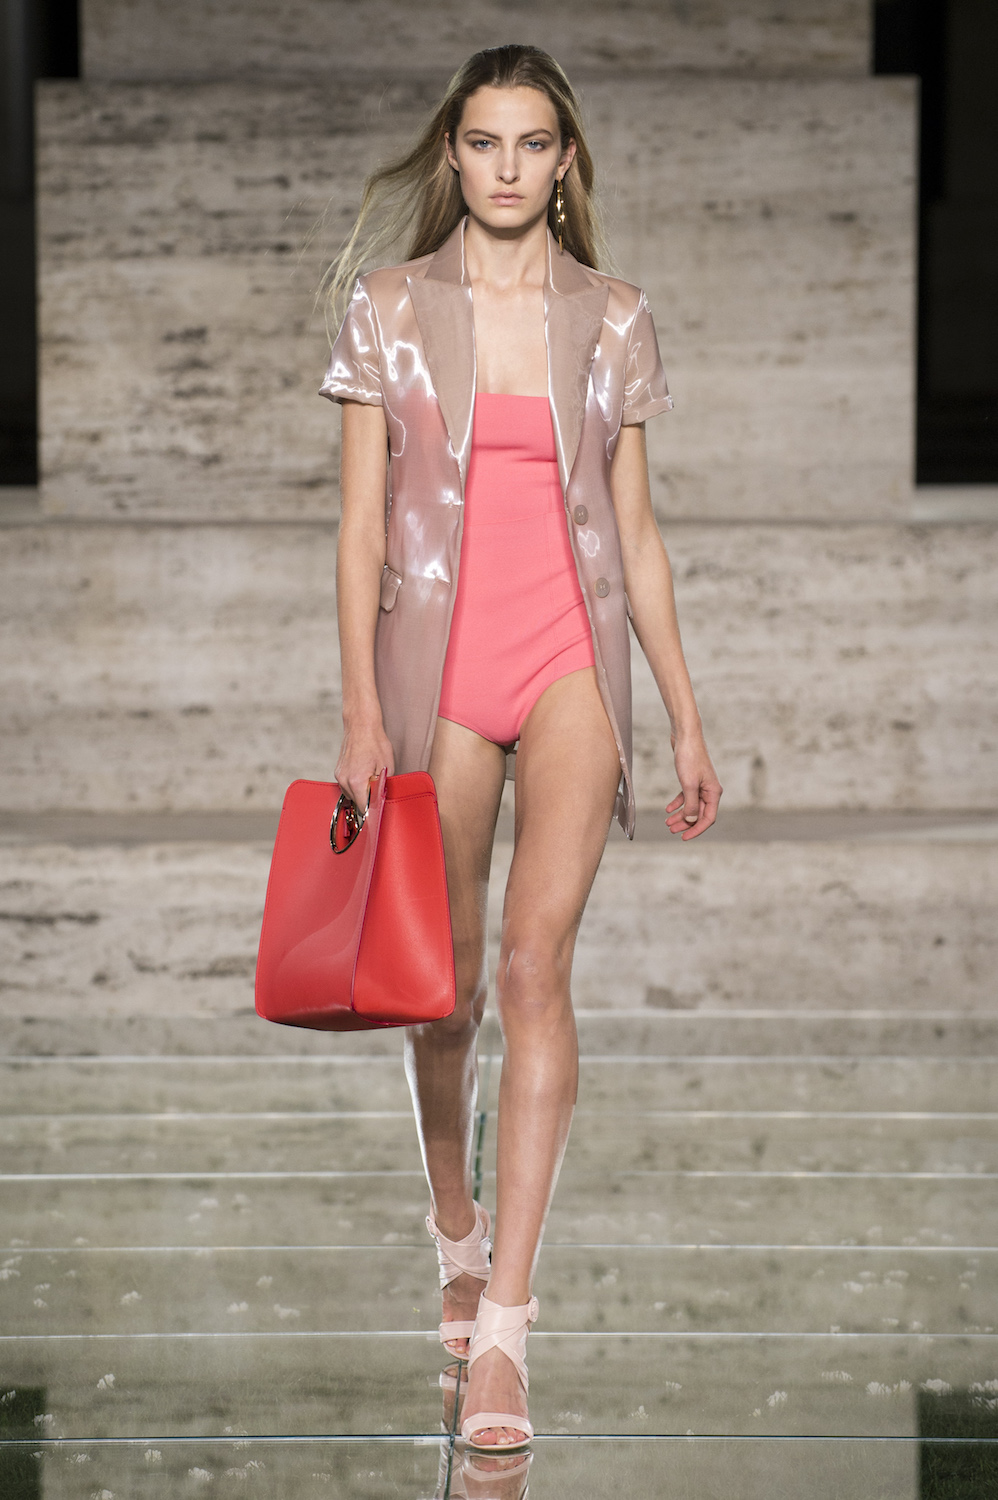 Salvatore Ferragamo's Light-as-a-Feather Collection for Spring/Summer 2018